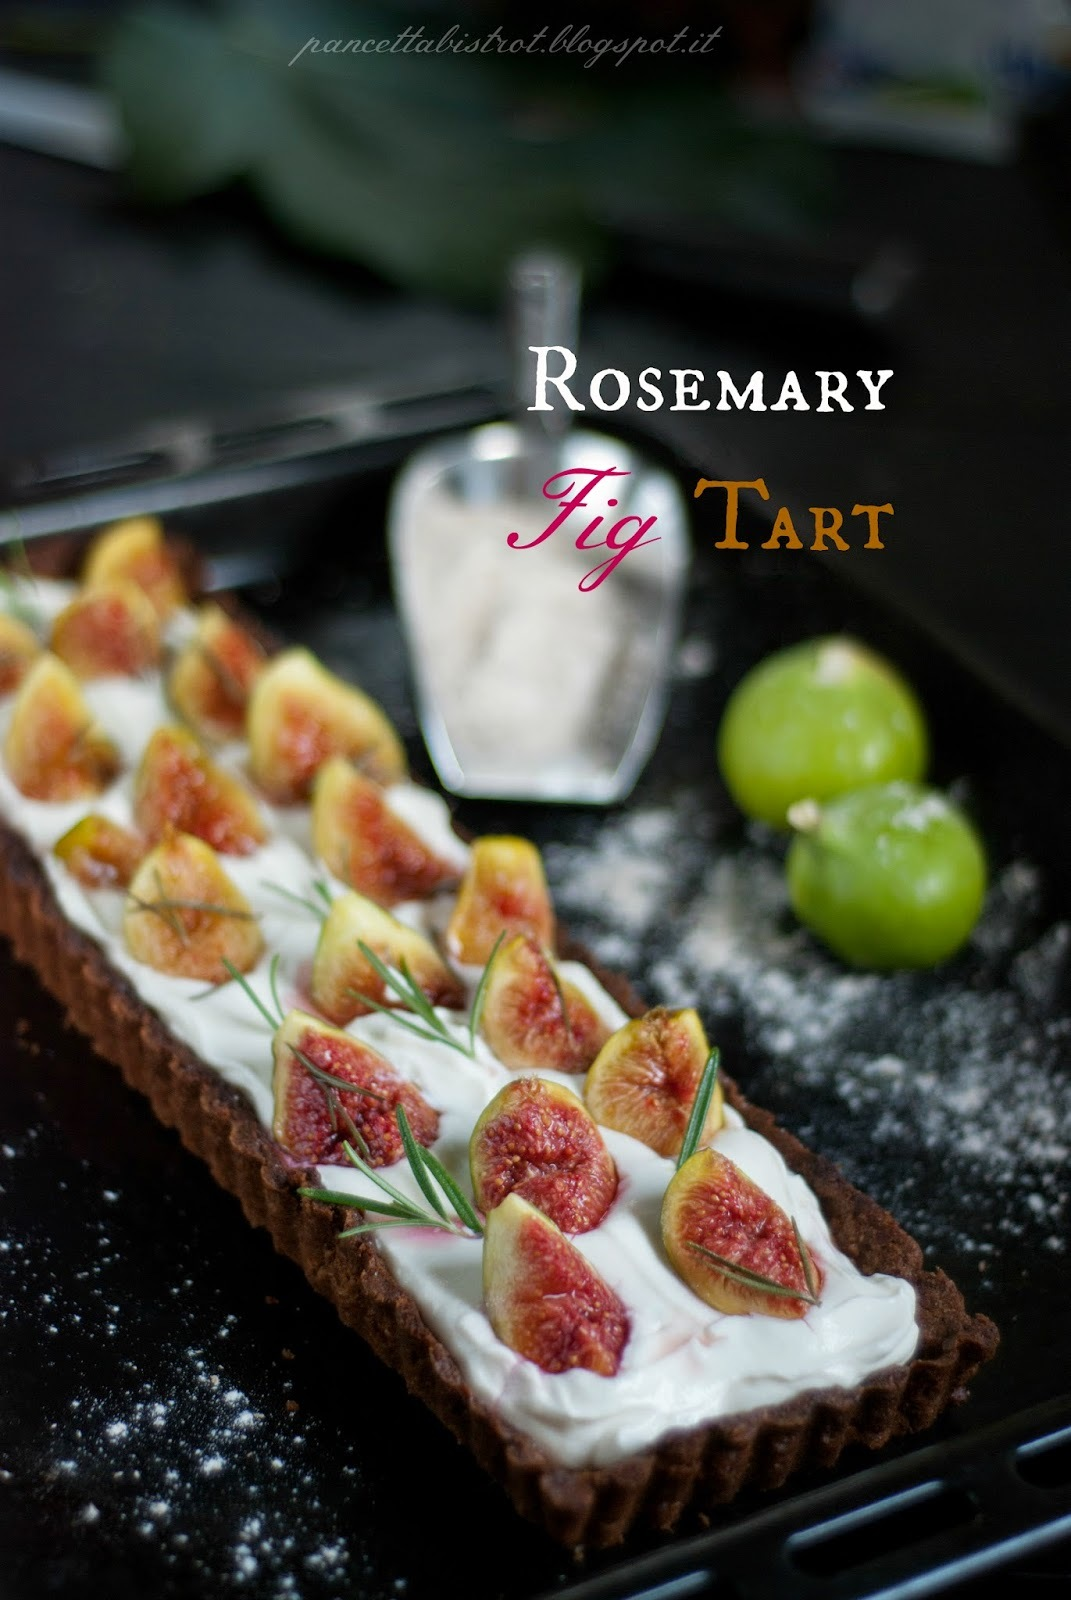 Rosemary Fig Tart : la nostra prima re-cake!